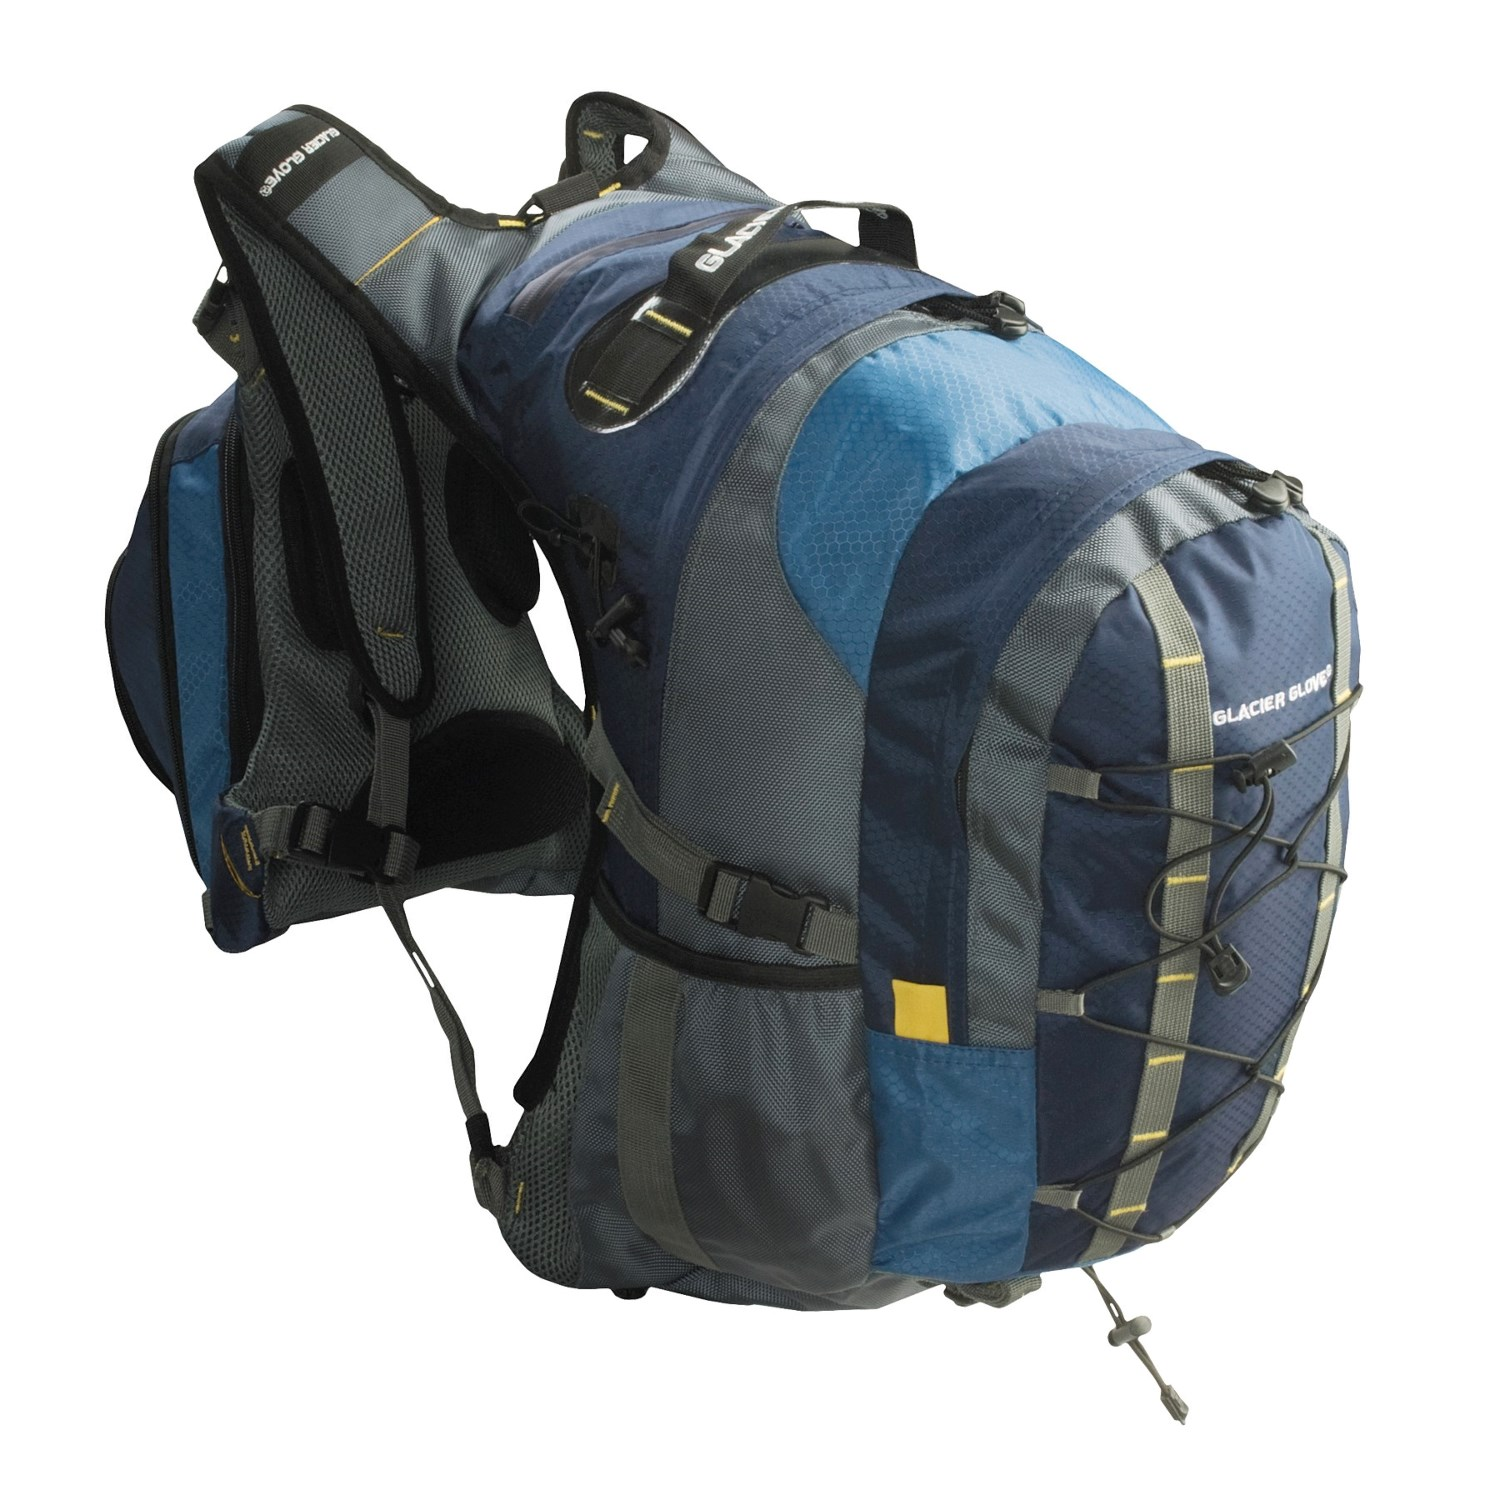 Glacier glove backpack and chest pack combo fishing for Fishing chest pack